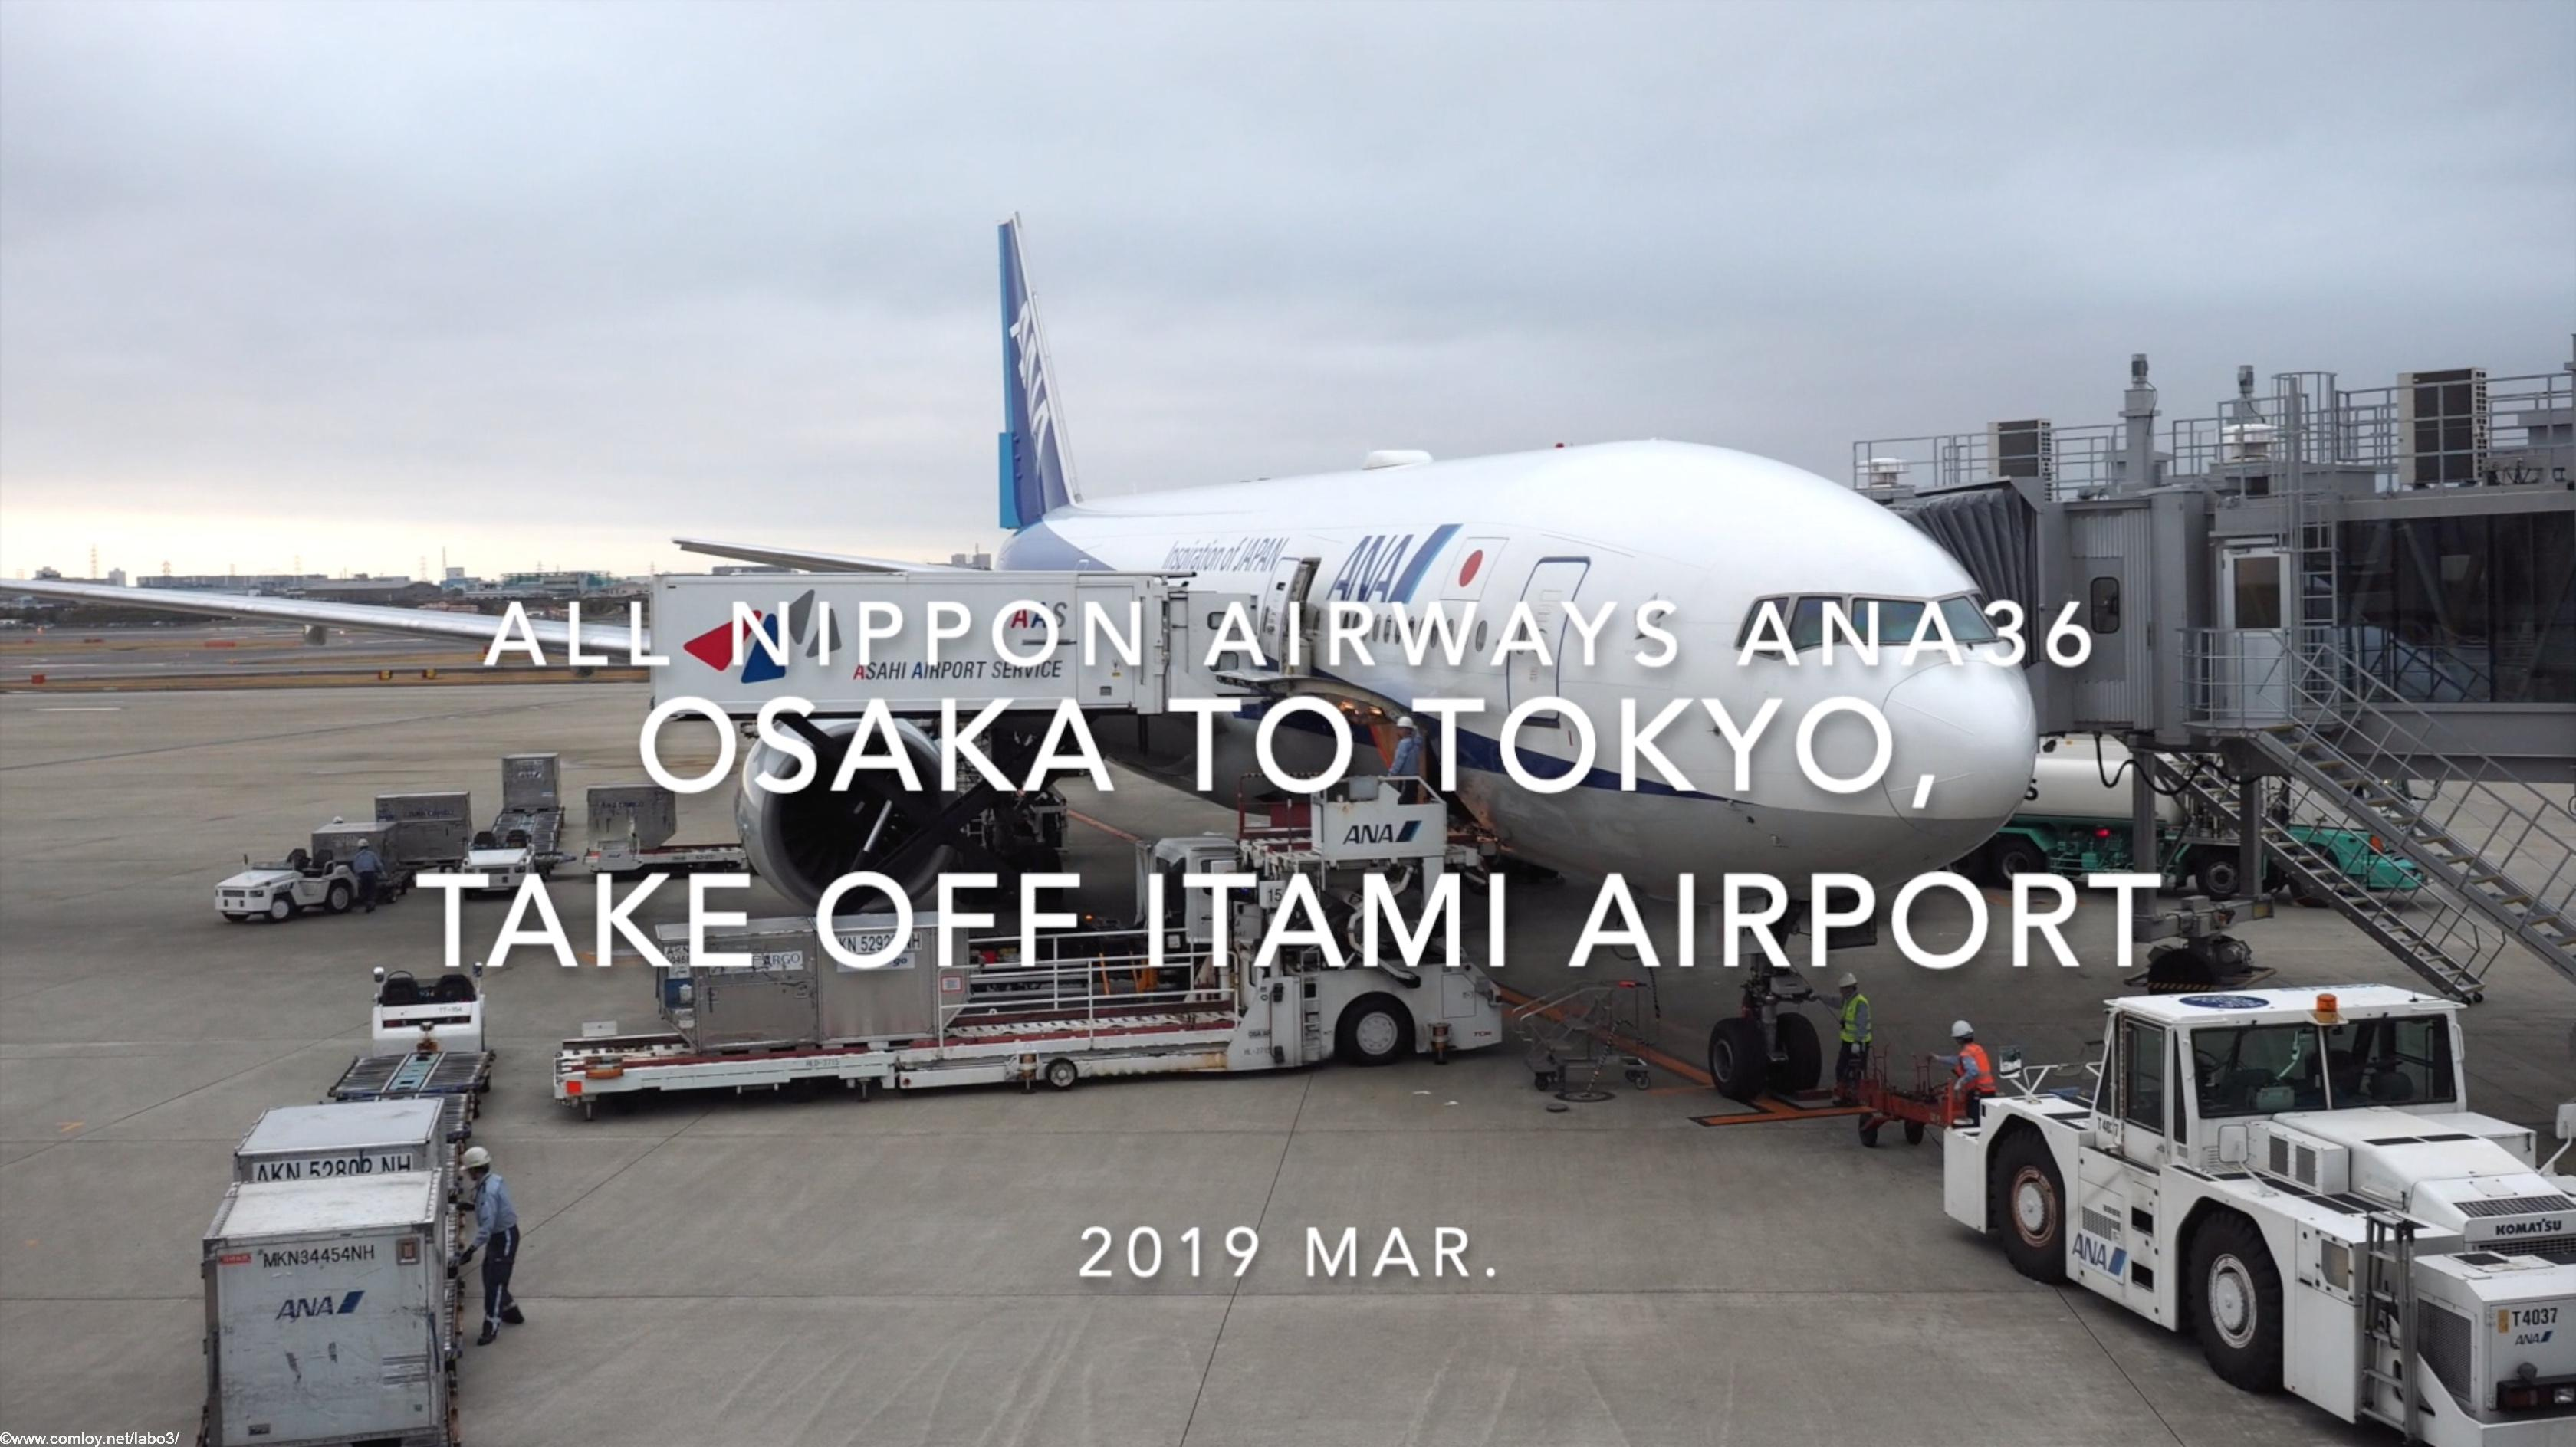 【機内から離着陸映像】2019 Mar All Nippon Airways ANA36 OSAKA to Tokyo, Take off OSAKA ITAMI Airport